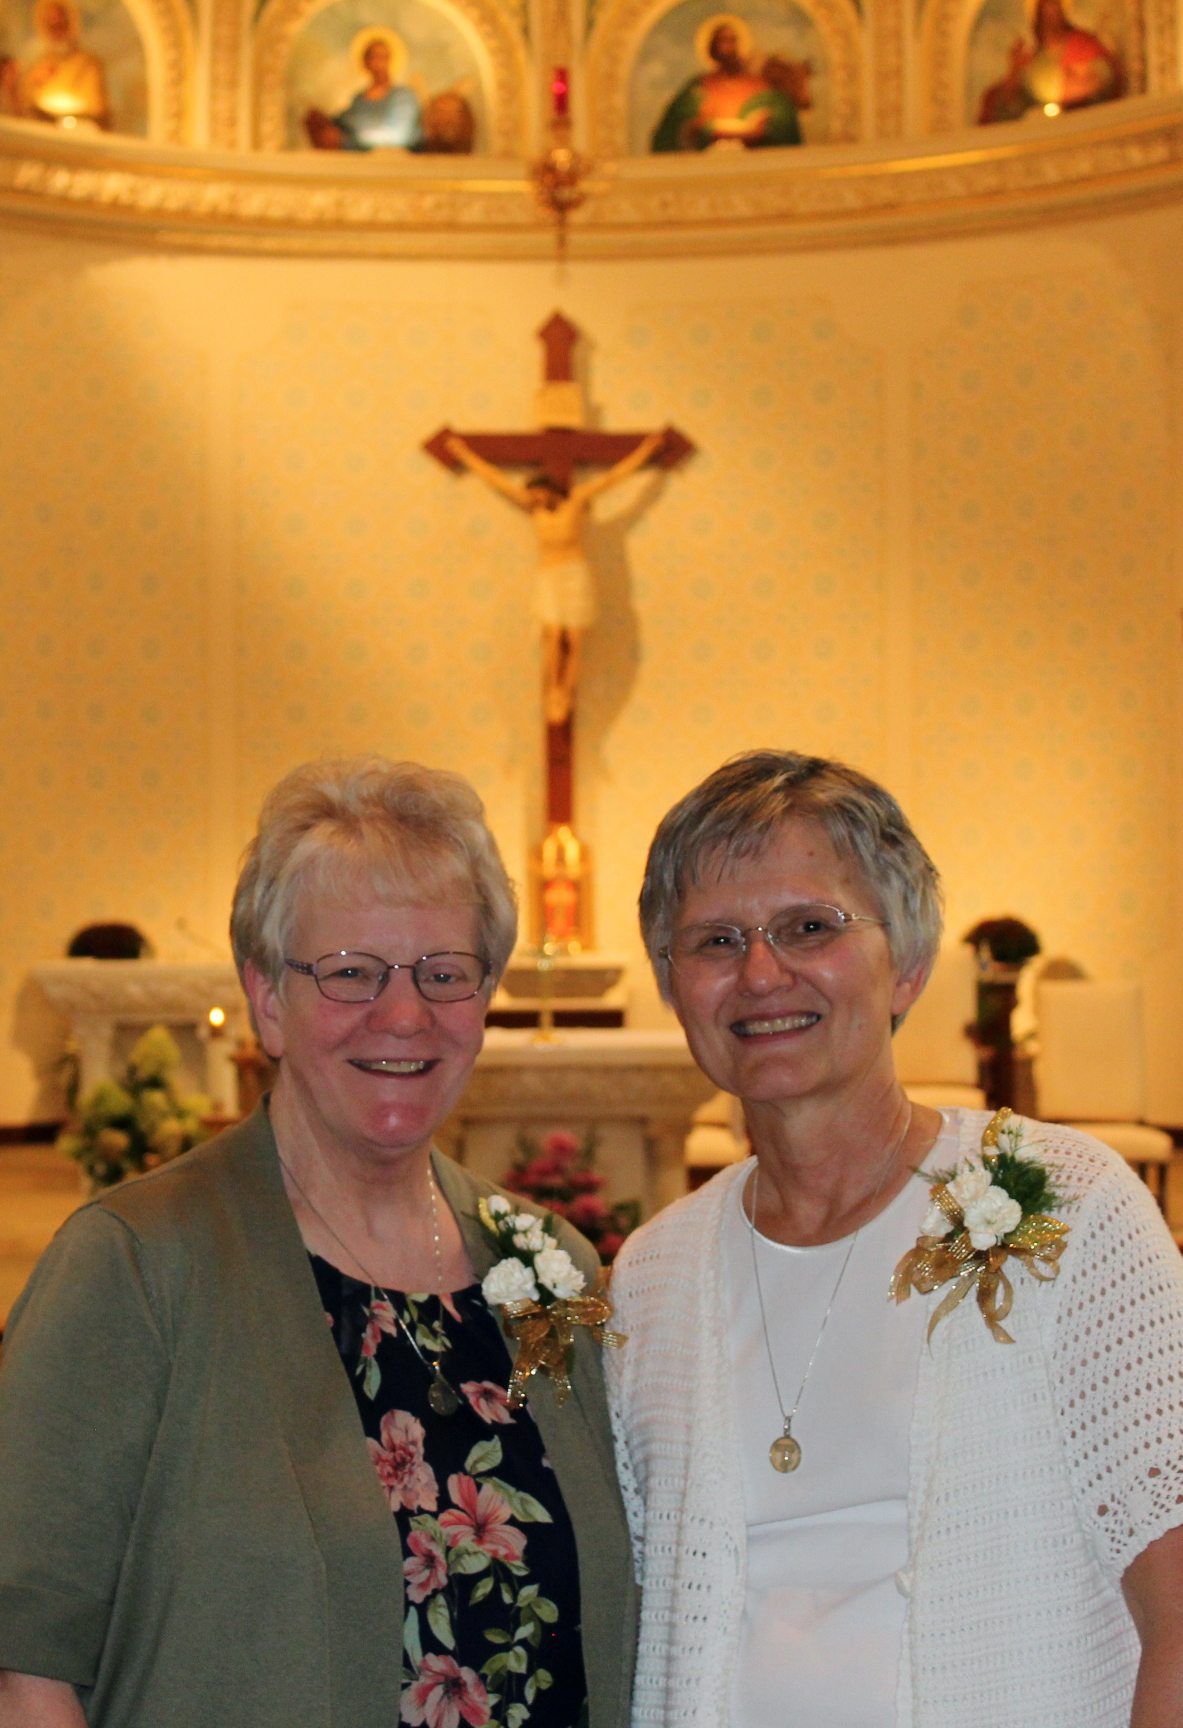 Congrats. Sr. Edna Michel and Sr. Joanne Lammers on your 50th Jubilee!